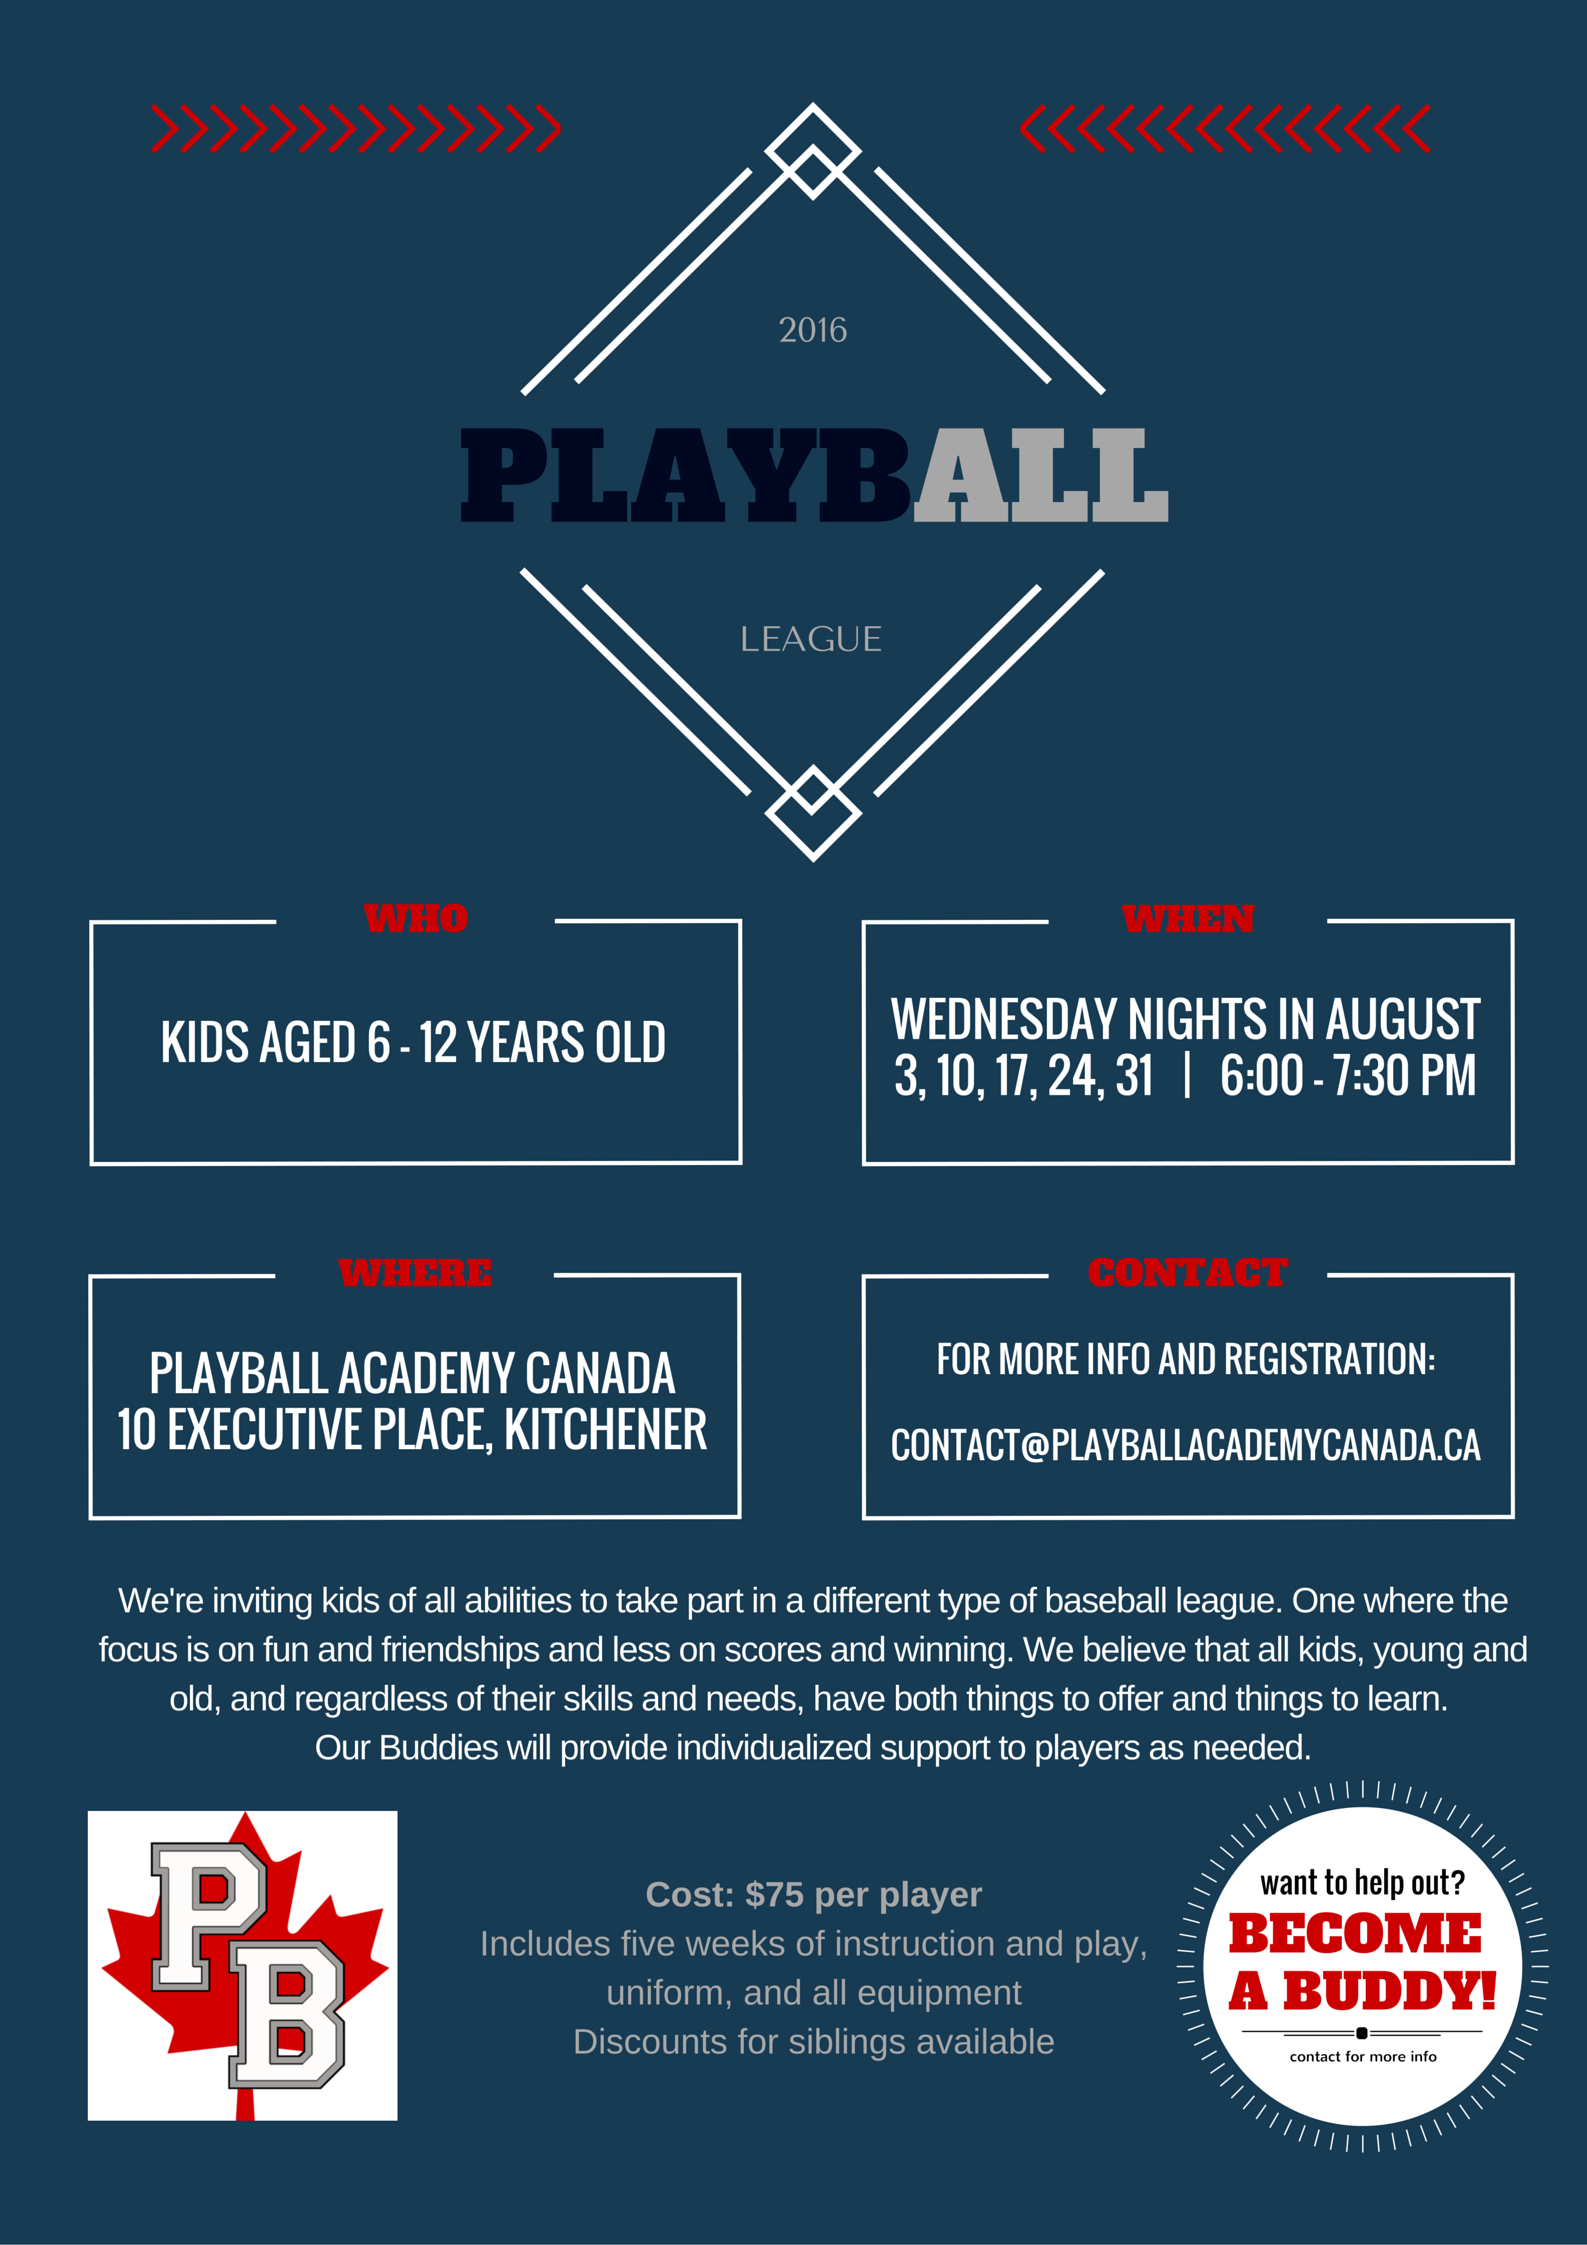 playbALL league